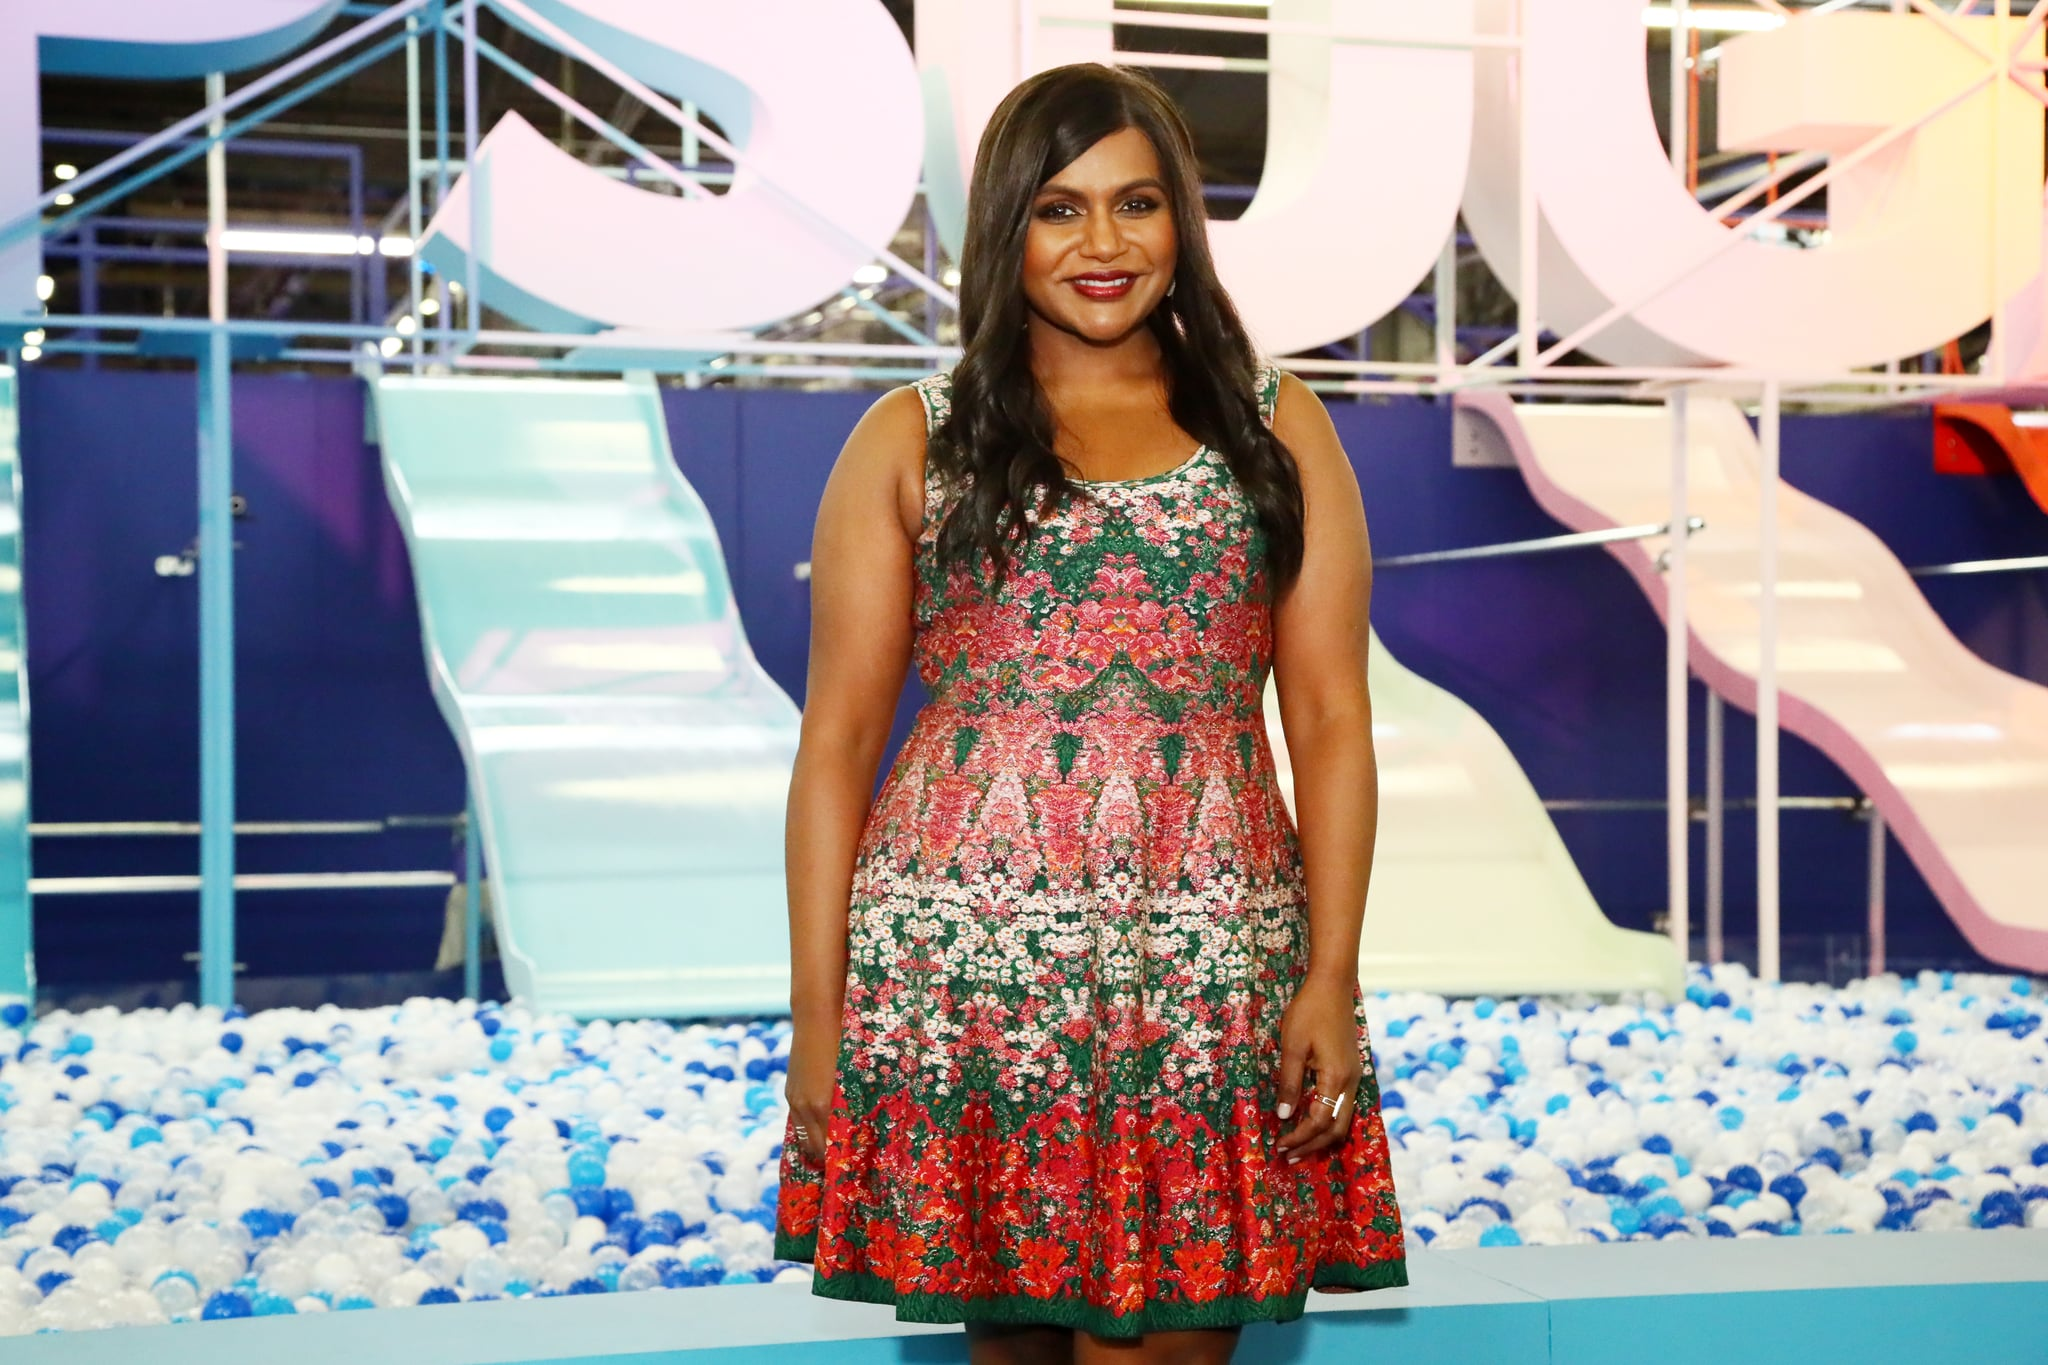 NEW YORK, NY - JUNE 09:  Mindy Kaling attends day 1 of POPSUGAR Play/Ground on June 9, 2018 in New York City.  (Photo by Astrid Stawiarz/Getty Images for POPSUGAR Play/Ground)